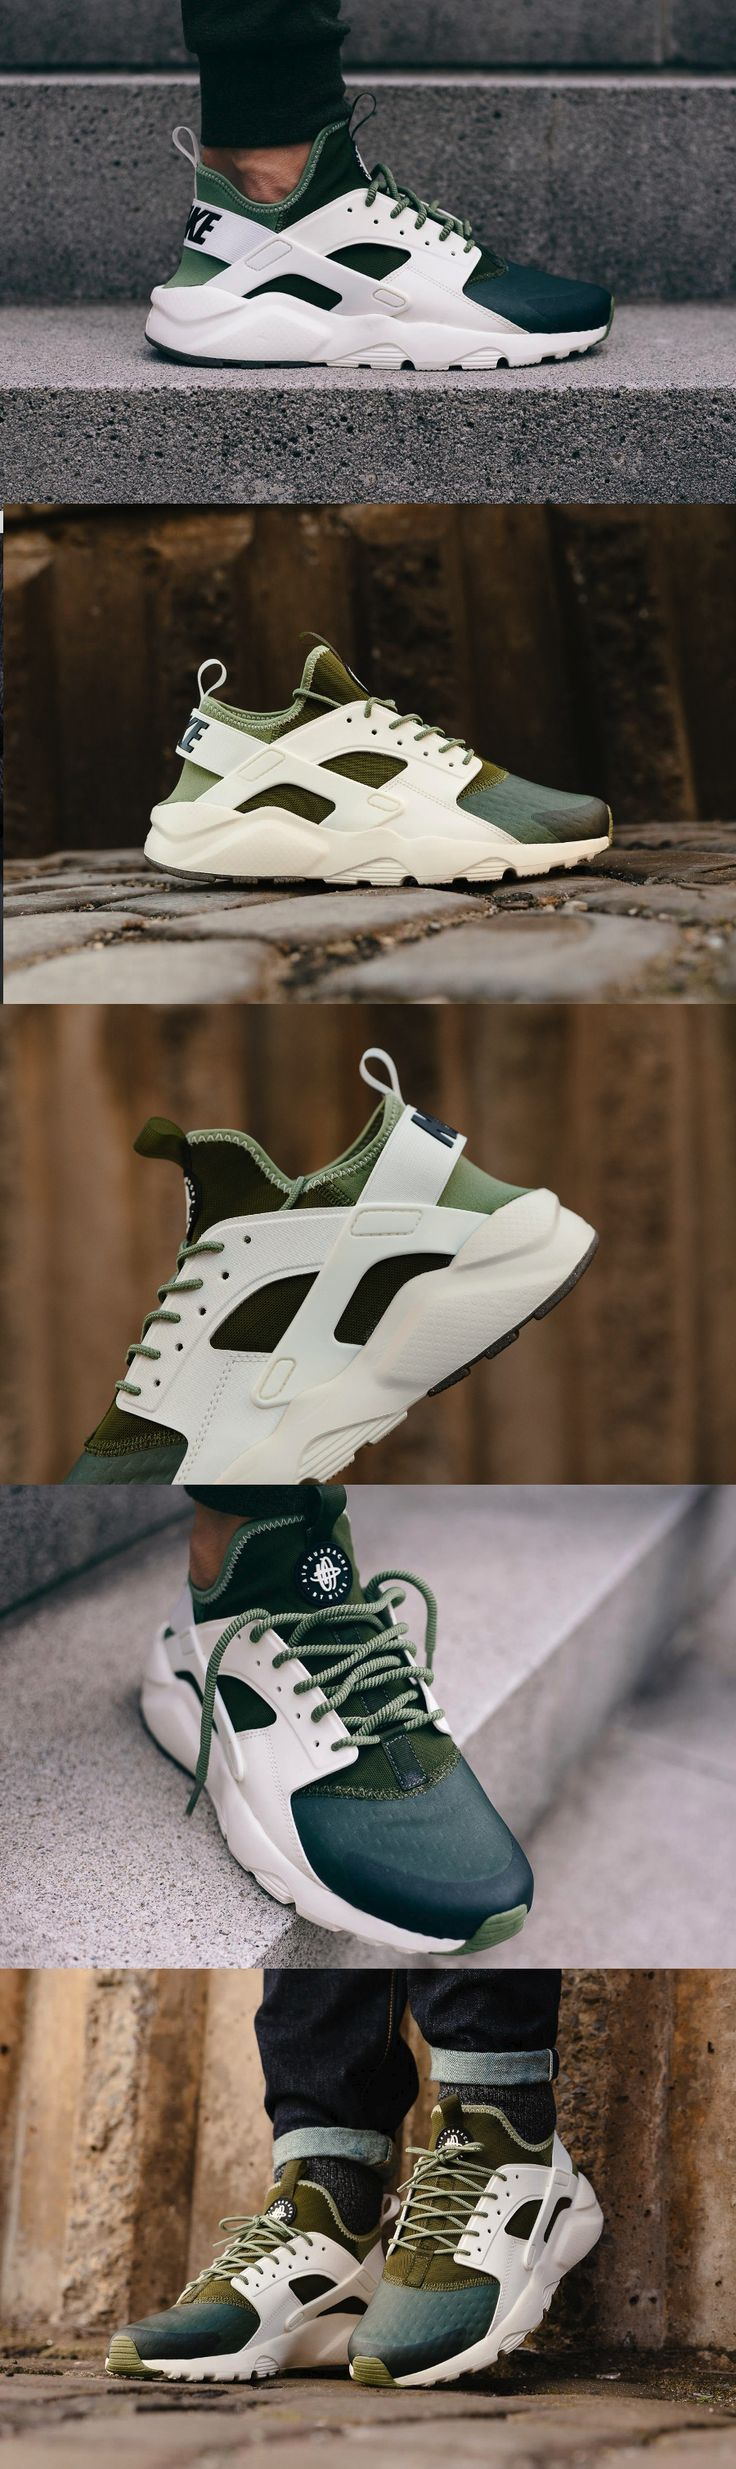 Nike Air Huarache Ultra // SE Palm Green